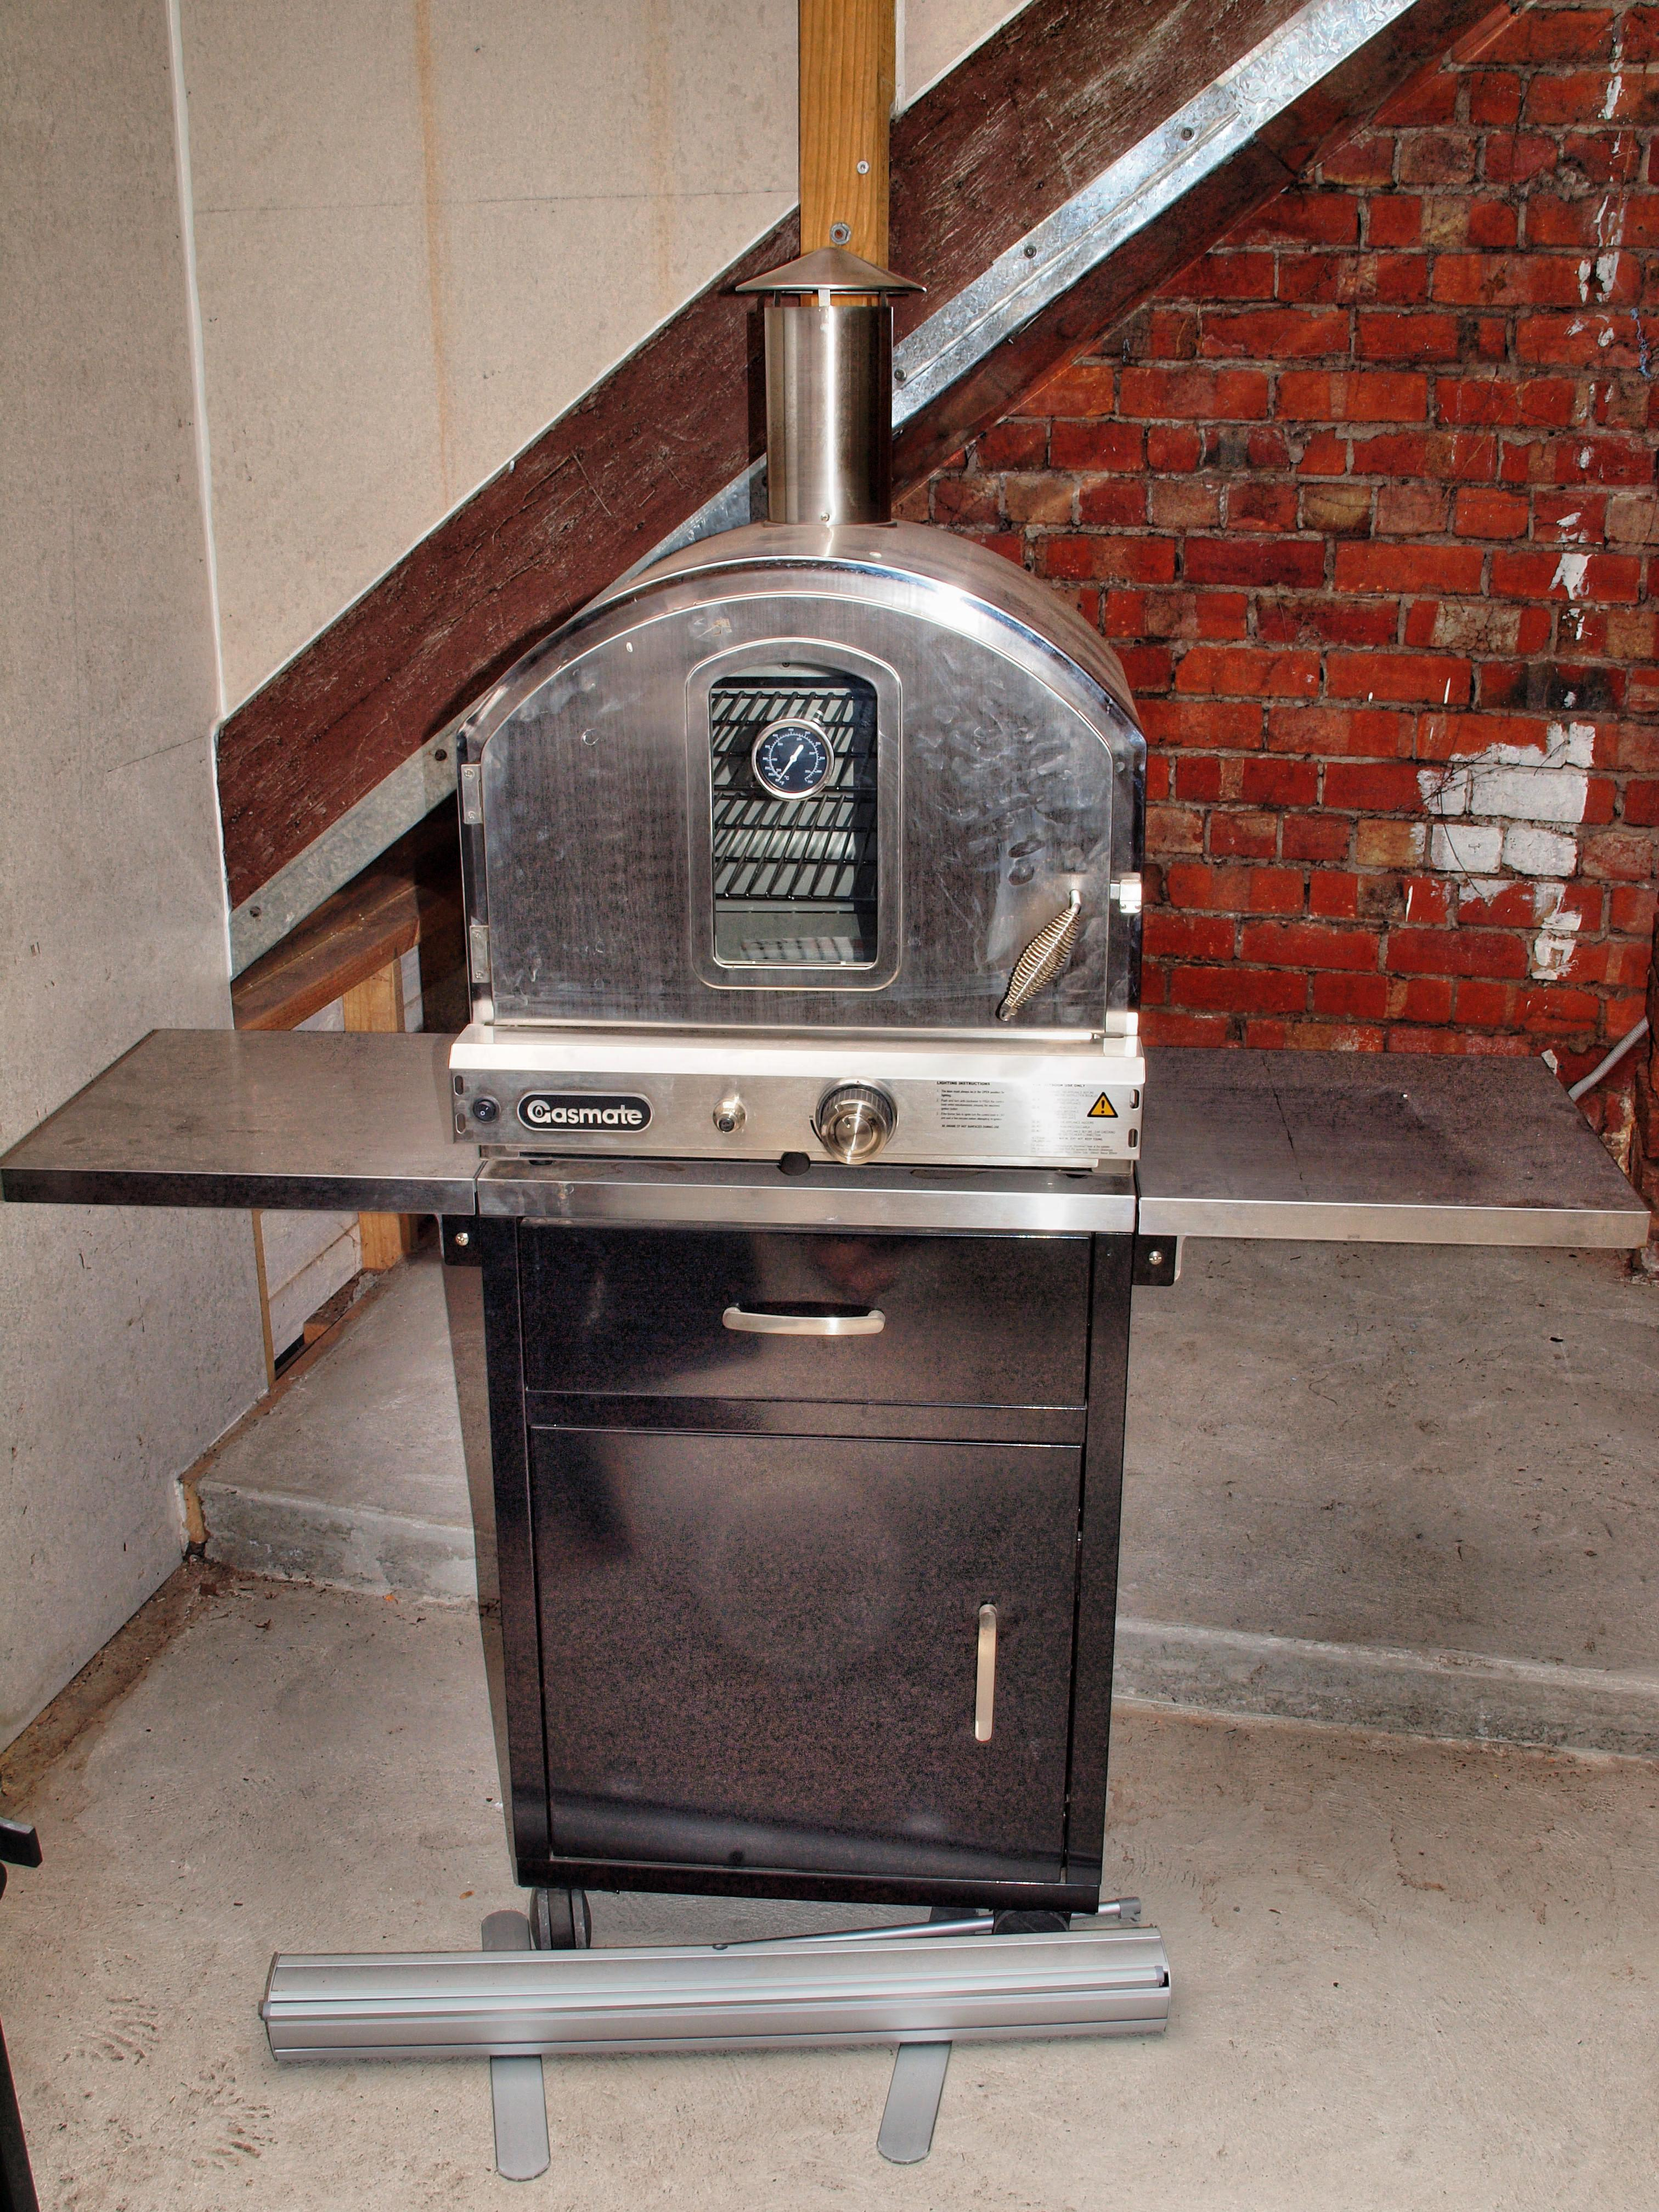 This should be Pizza-oven-1.jpeg.  Is it missing?